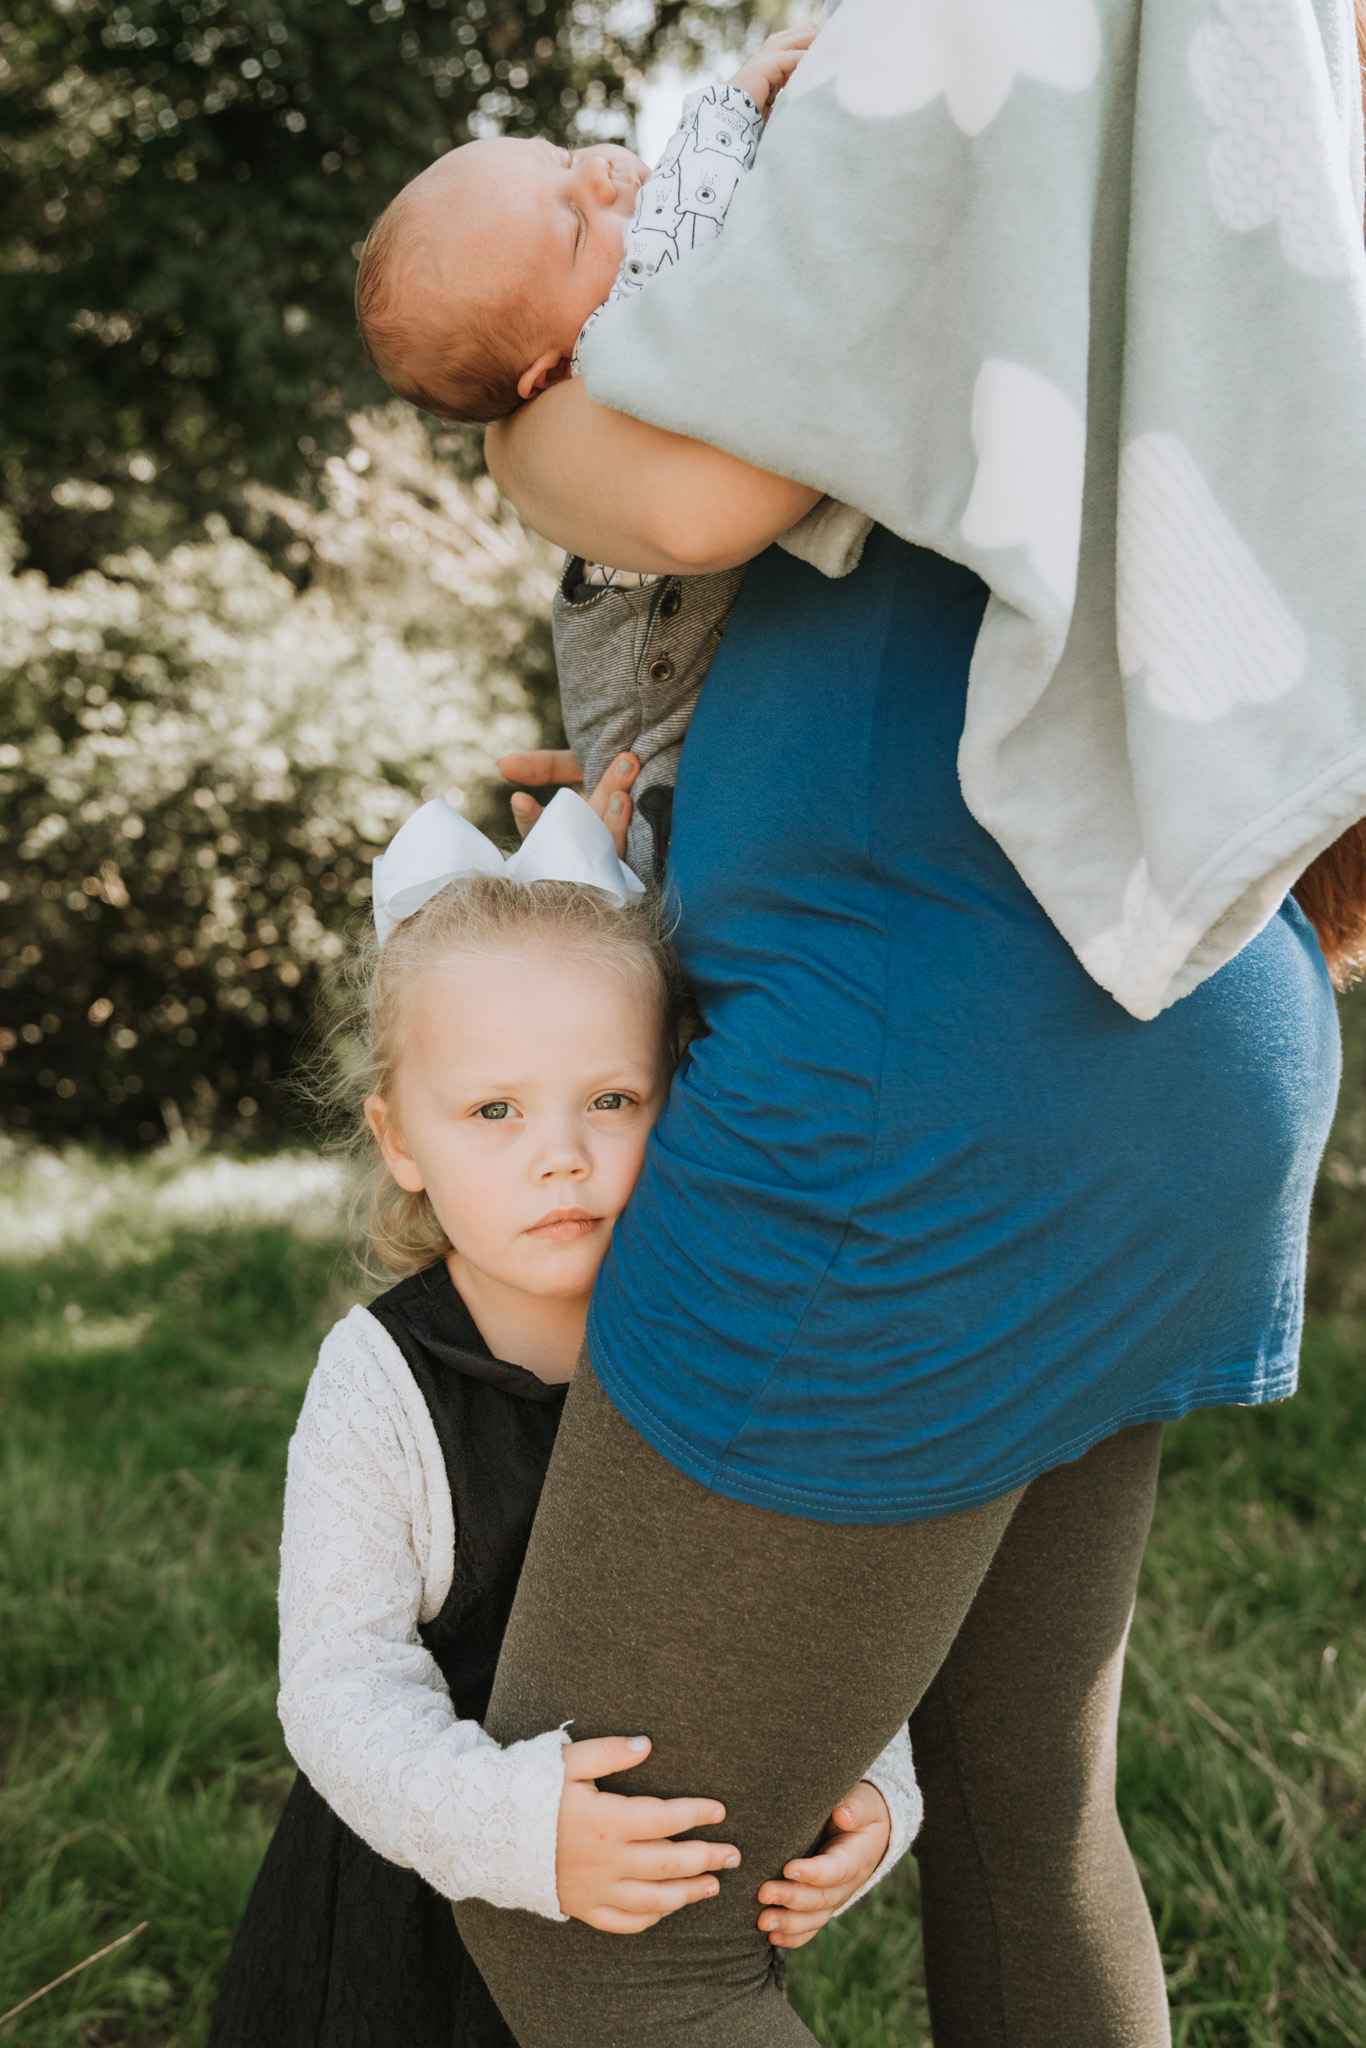 Toddler portrait with her newborn brother on location